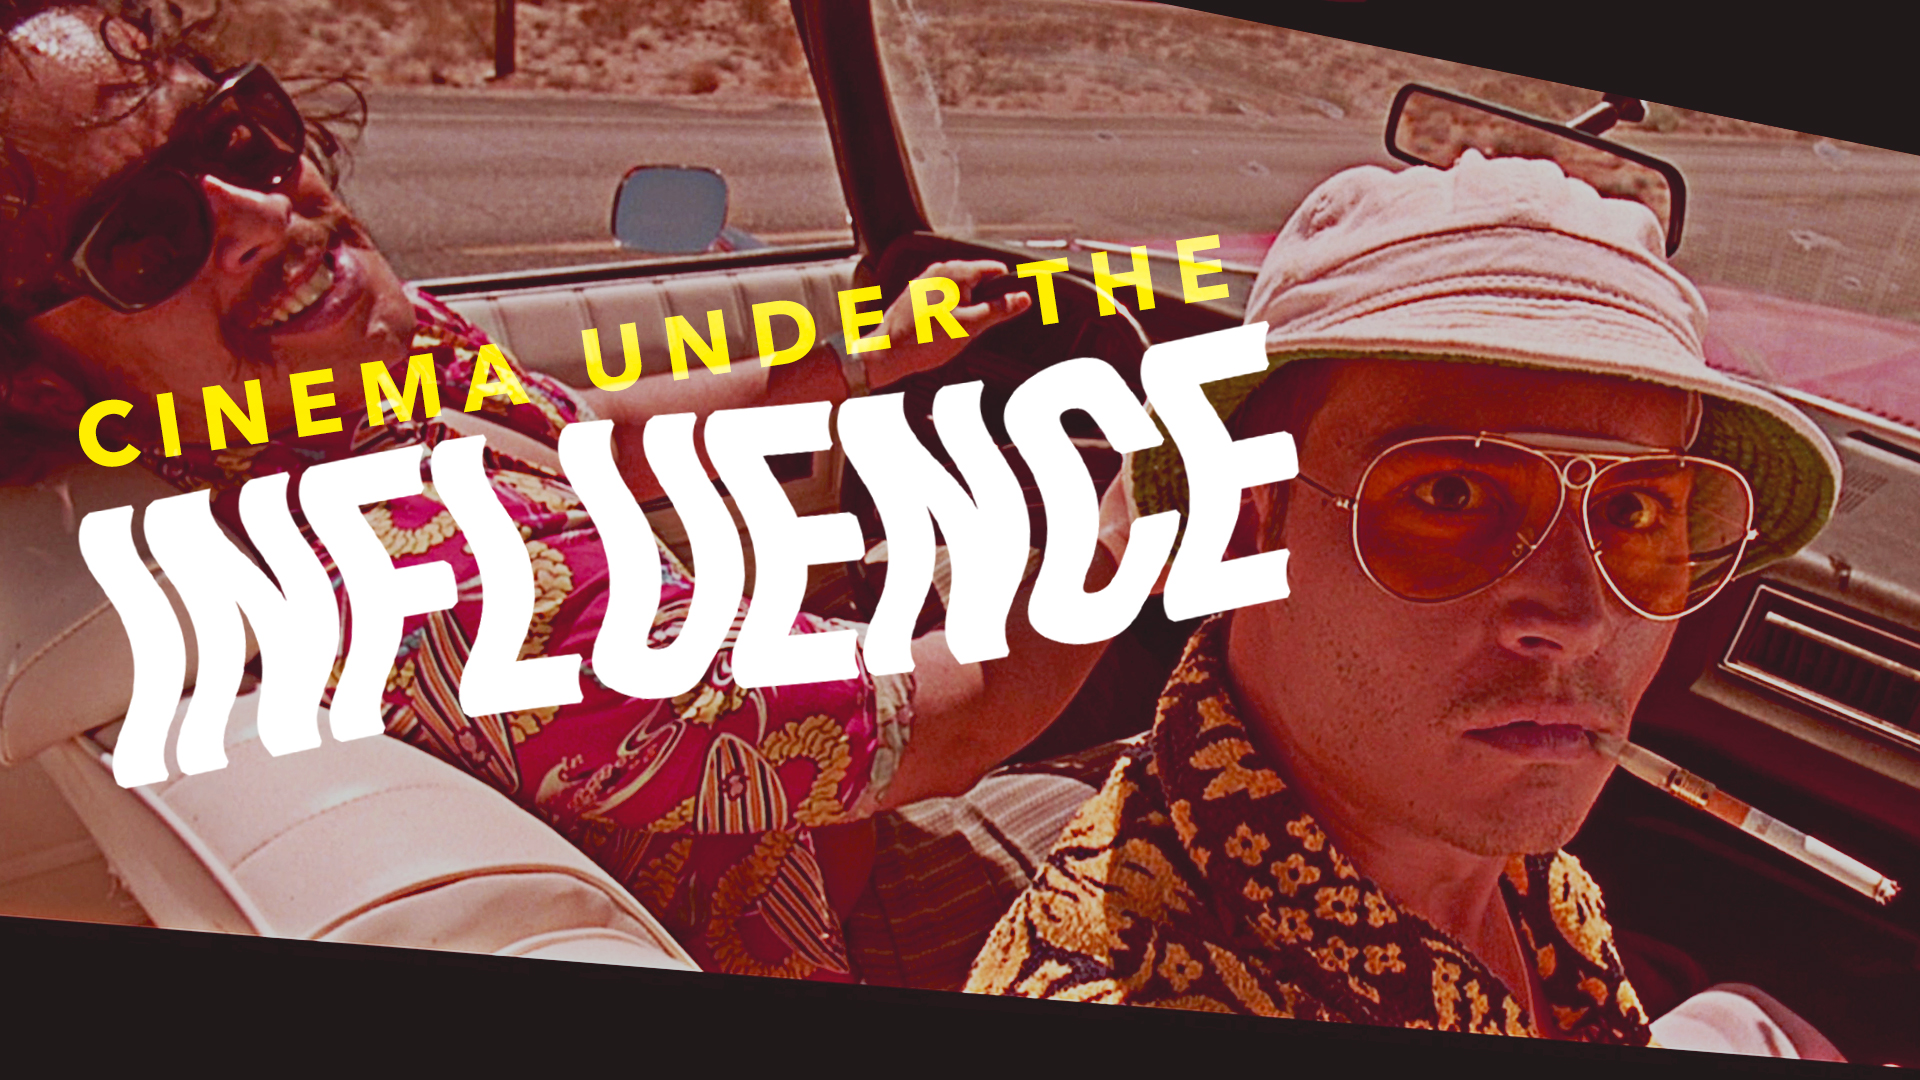 undertheinfluence_cover_1920x1080.jpg